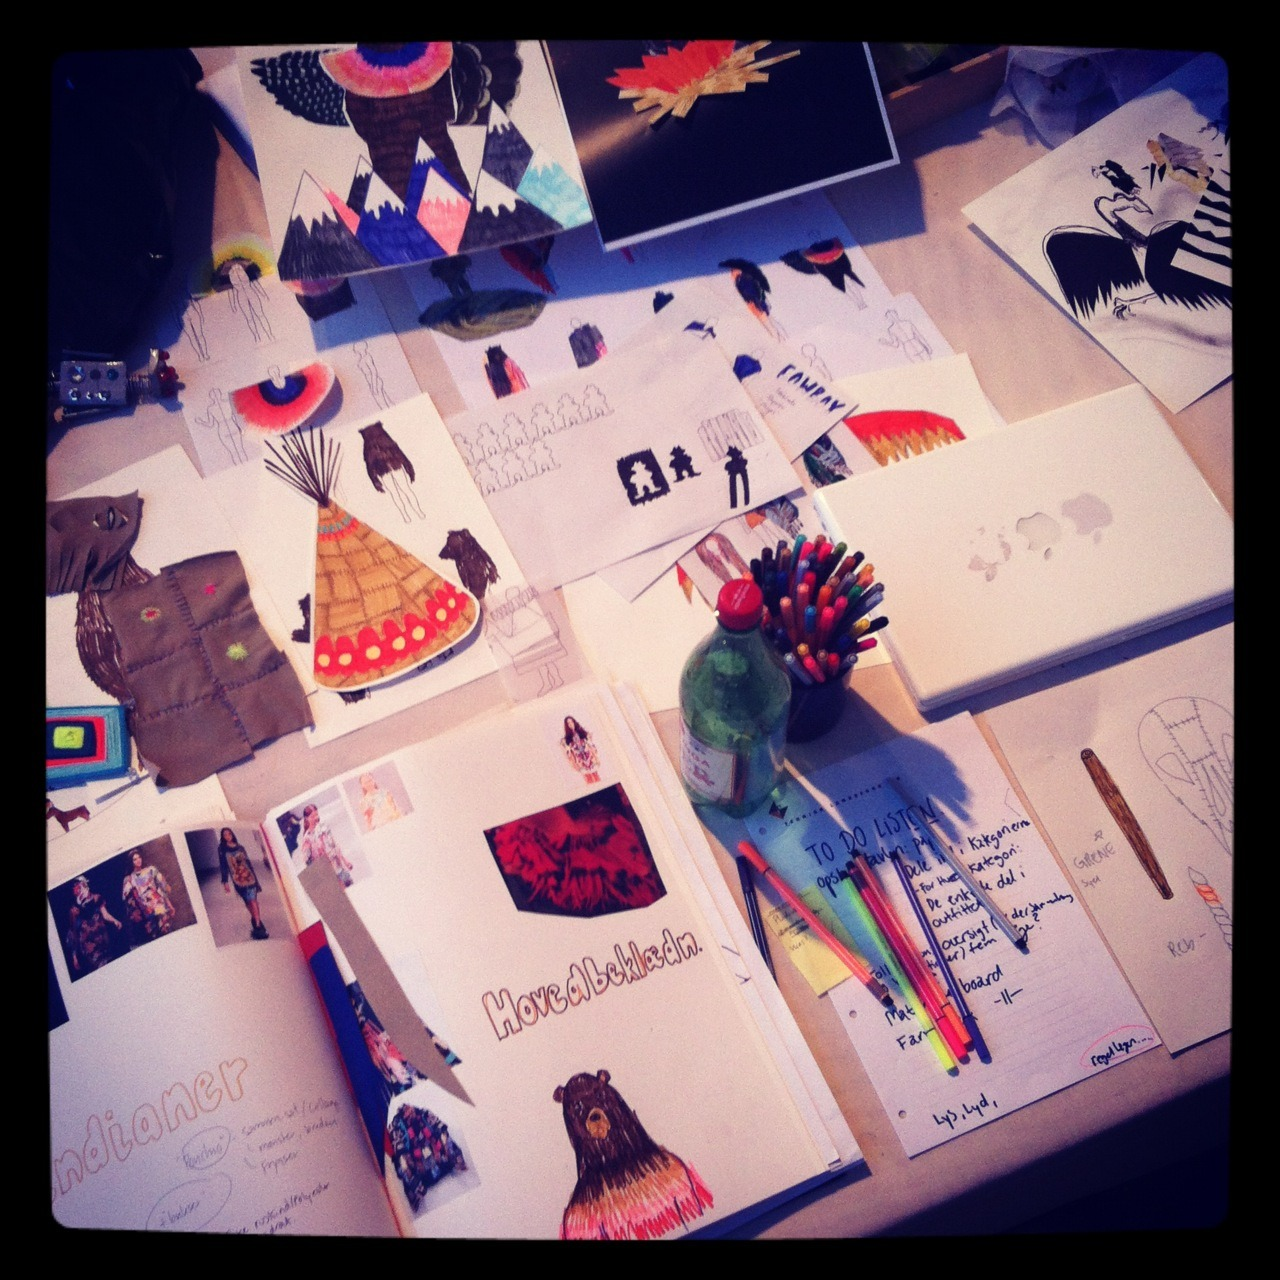 The Haute Couture Illustration project //Rikke and Maja http://karlsenlindstroem.tumblr.com/